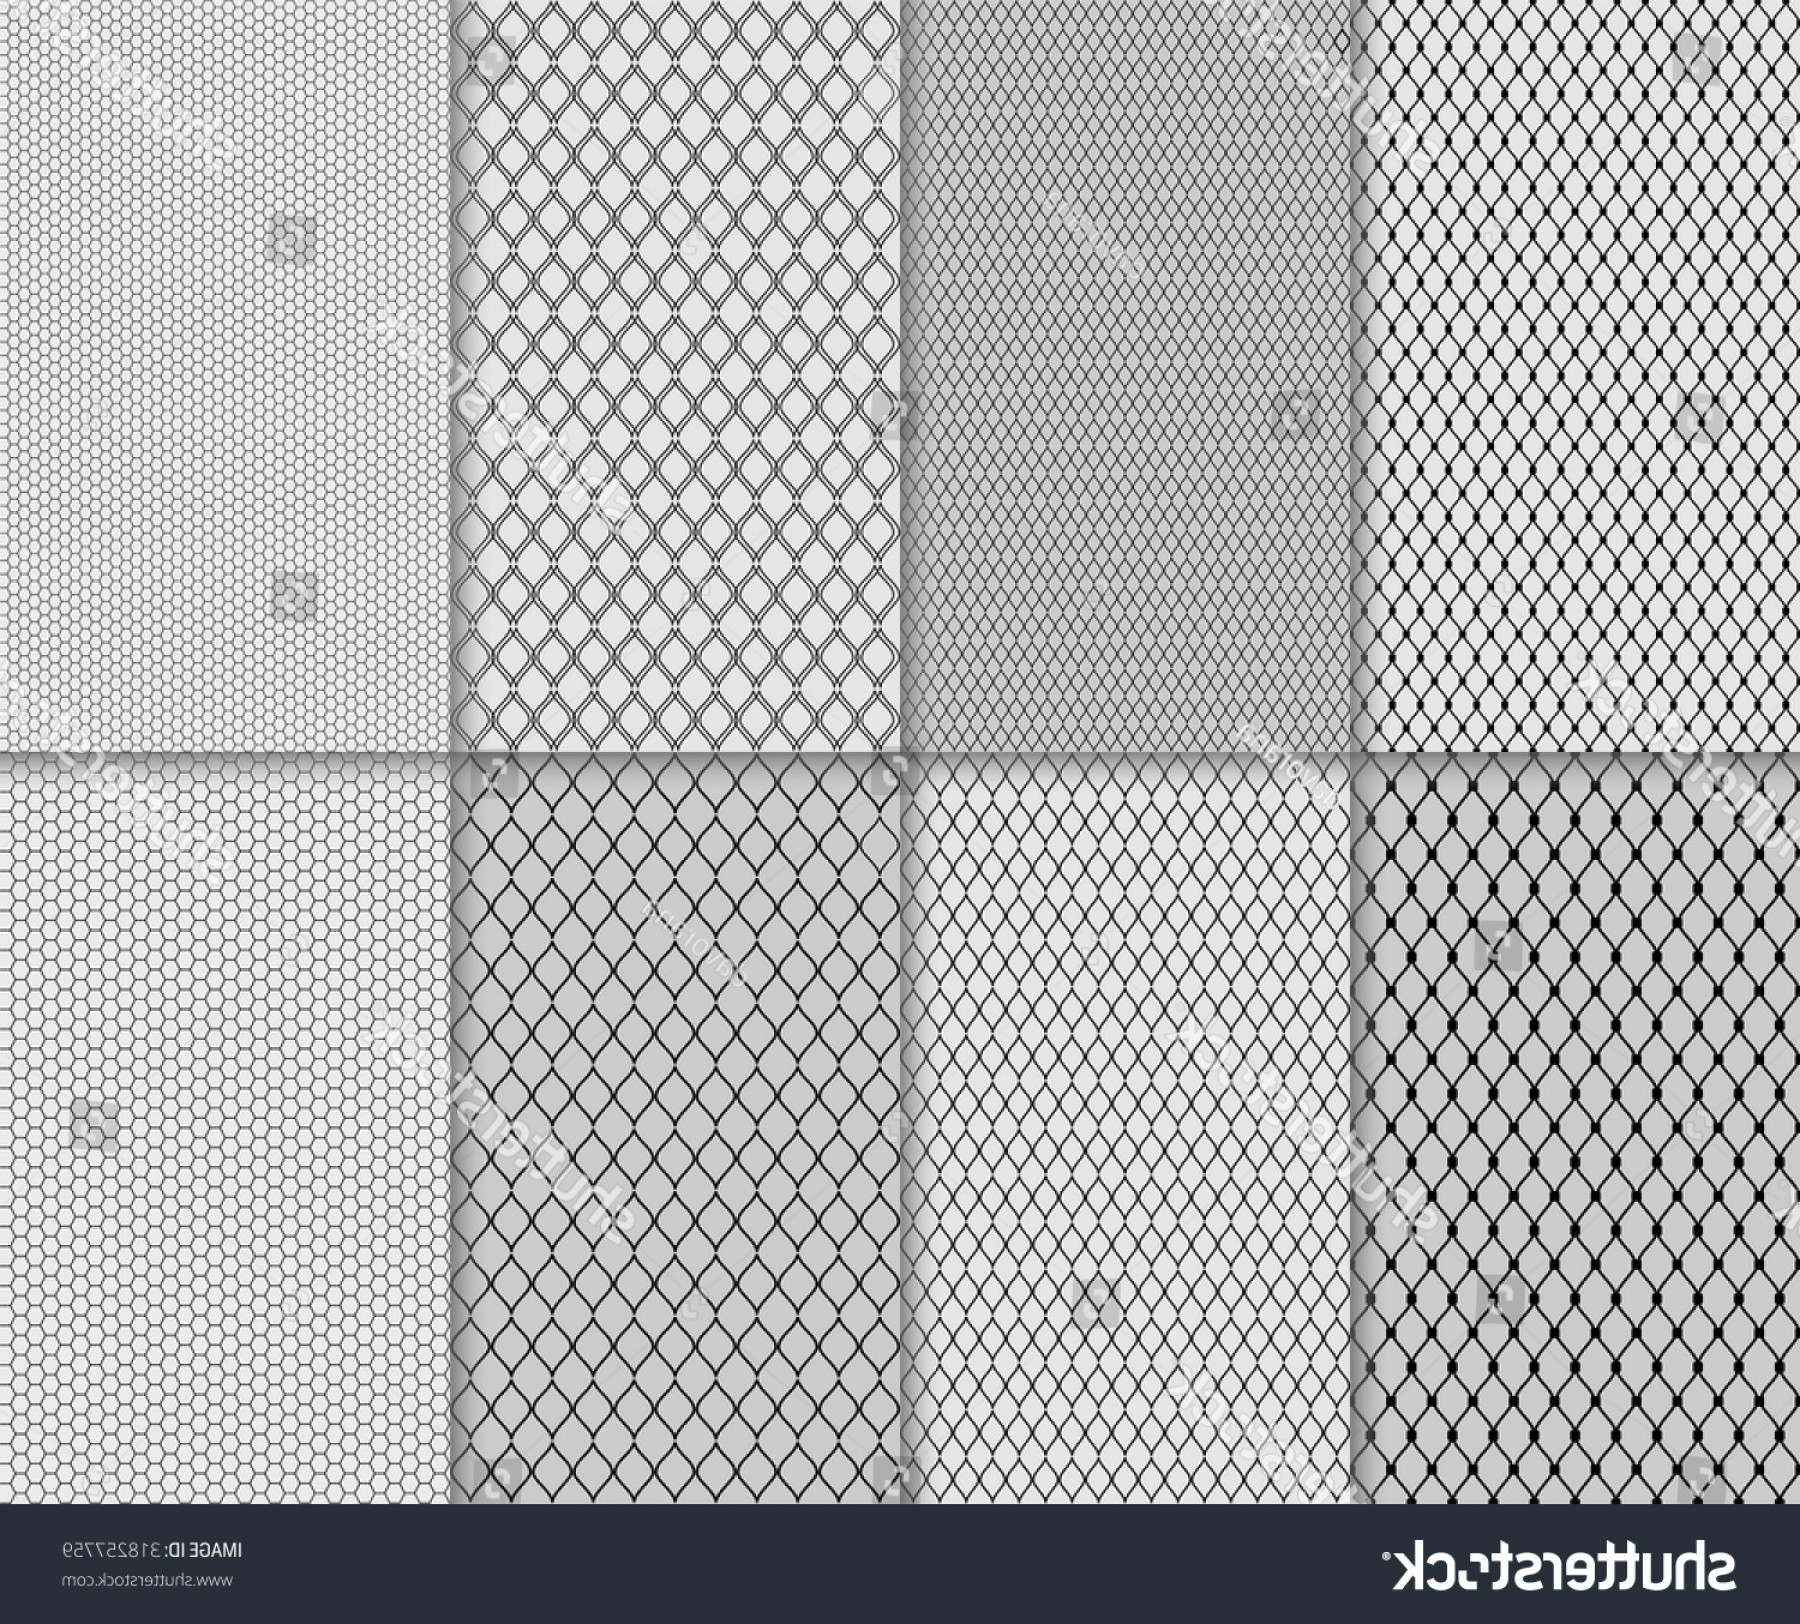 Tulle Black Lace Pattern Vector: Shutterstock Set Of Abstract Seamless Lace And Tulle